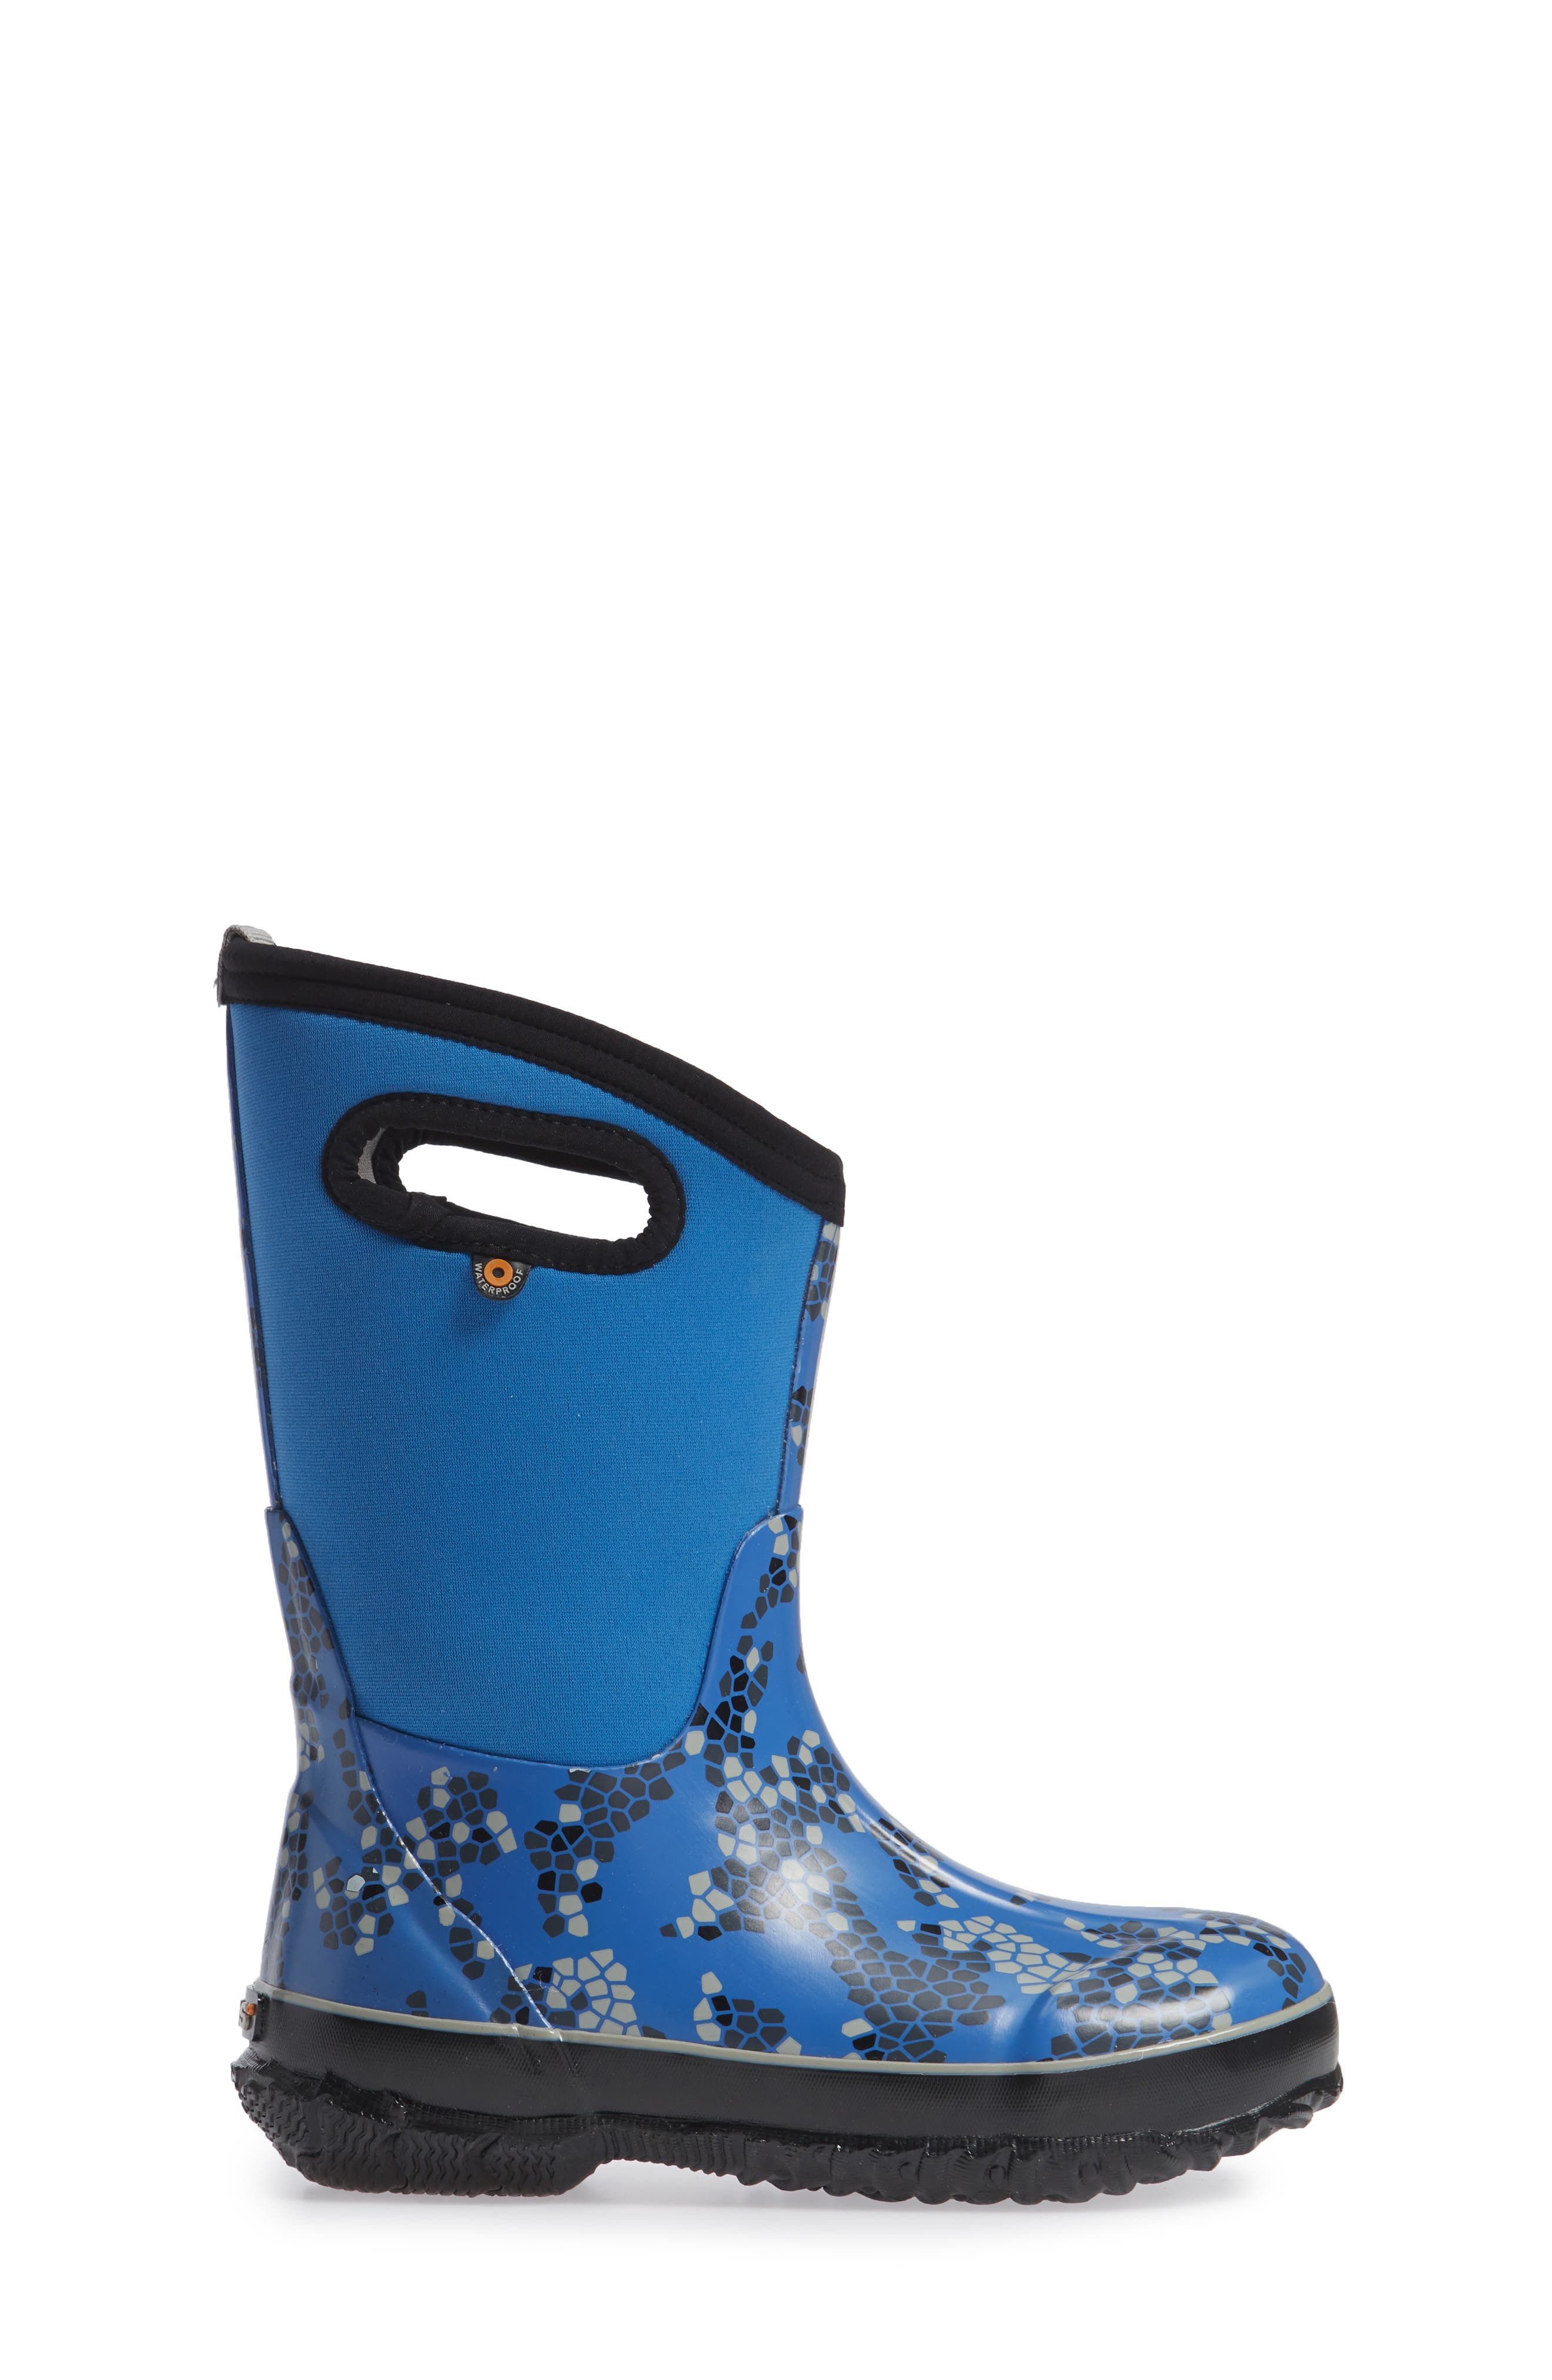 Classic Axel Insulated Waterproof Boot,                             Alternate thumbnail 3, color,                             Blue Multi